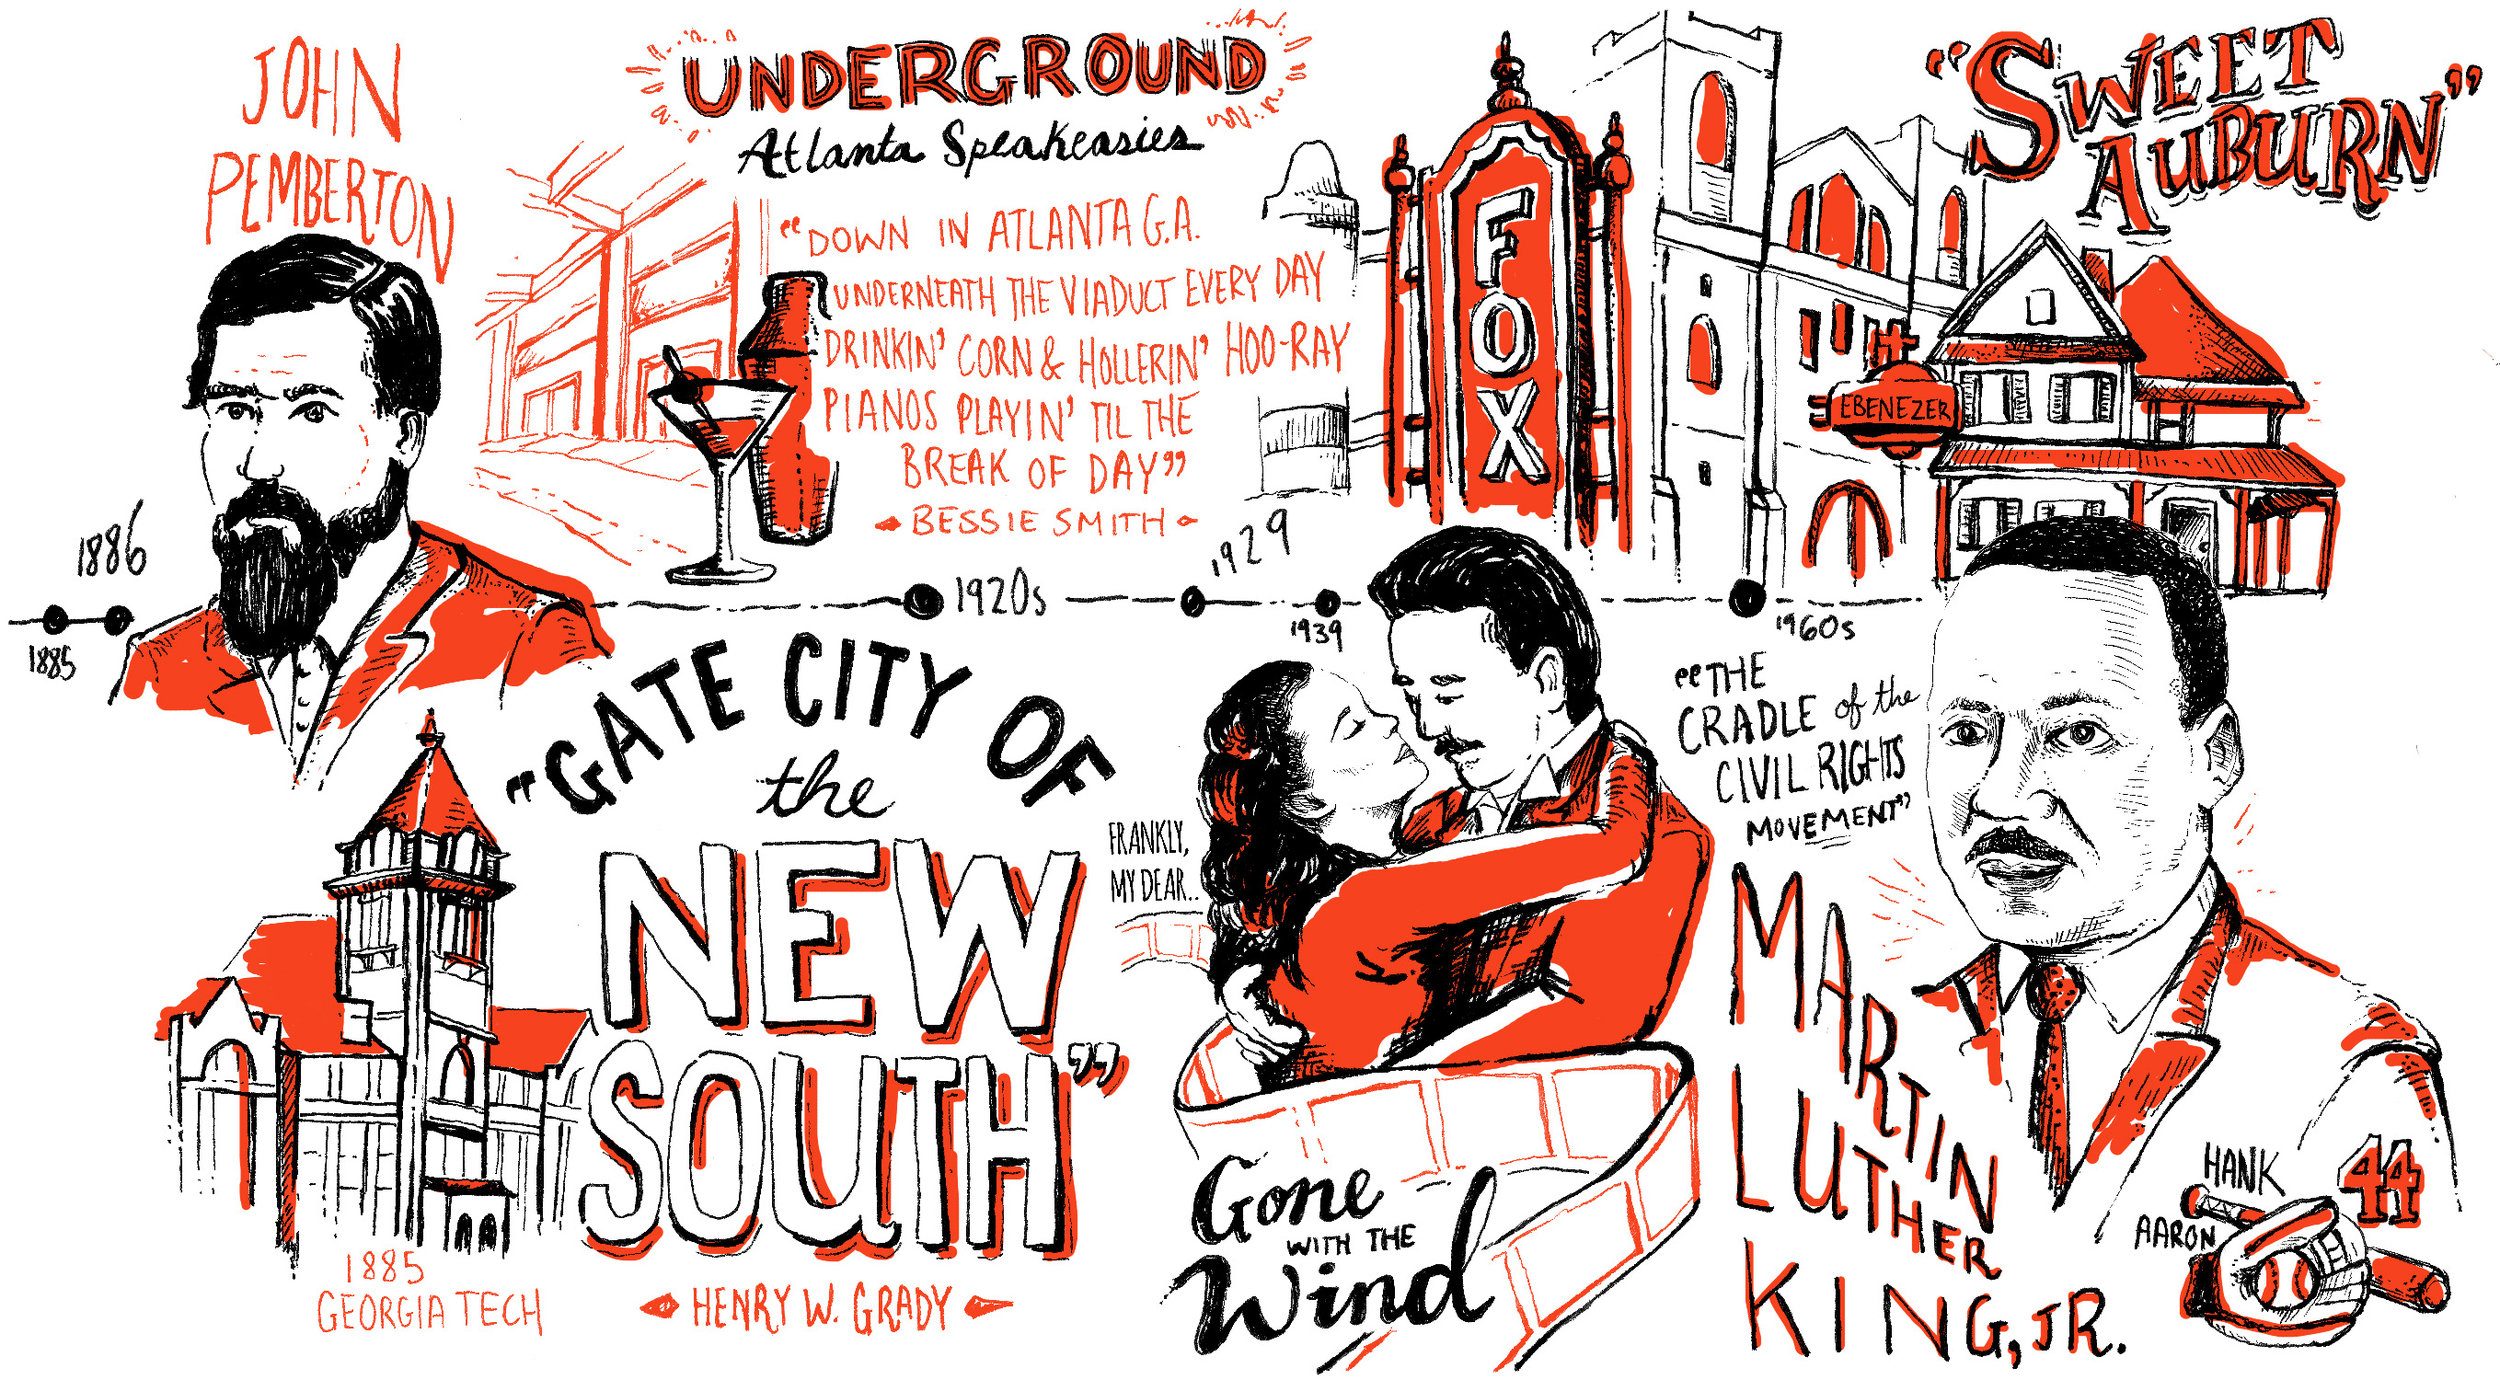 A piece of the Neenah Atlanta illustrated timeline, drawn by Russell Shaw, with two color black and red art. Shows John Pemberton, Underground Atlanta's speakeasies, Georgia Tech's founding, Henry Grady quote, the Fox theatre, Gone with the Wind, Martin Luther King Jr and Hank Aaron and the Sweet Auburn district.